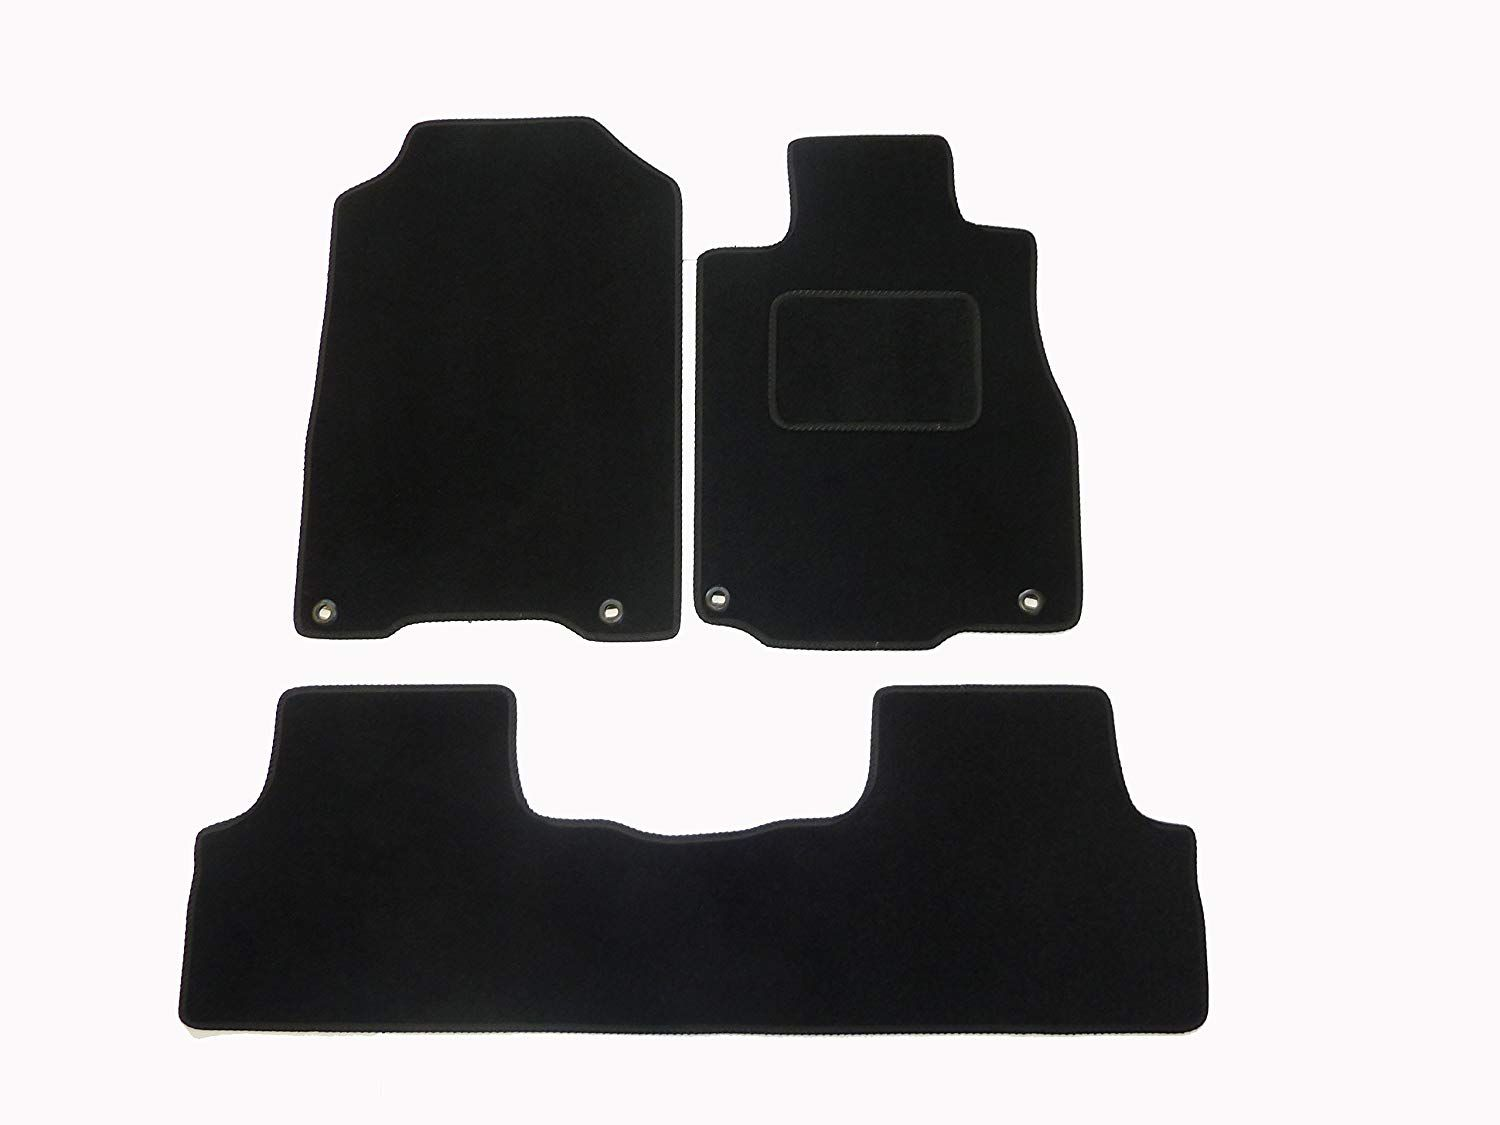 Connected Essentials Honda Crv Floor Mats 2017 2016 By Deluxe Mat In Black With Trim Price